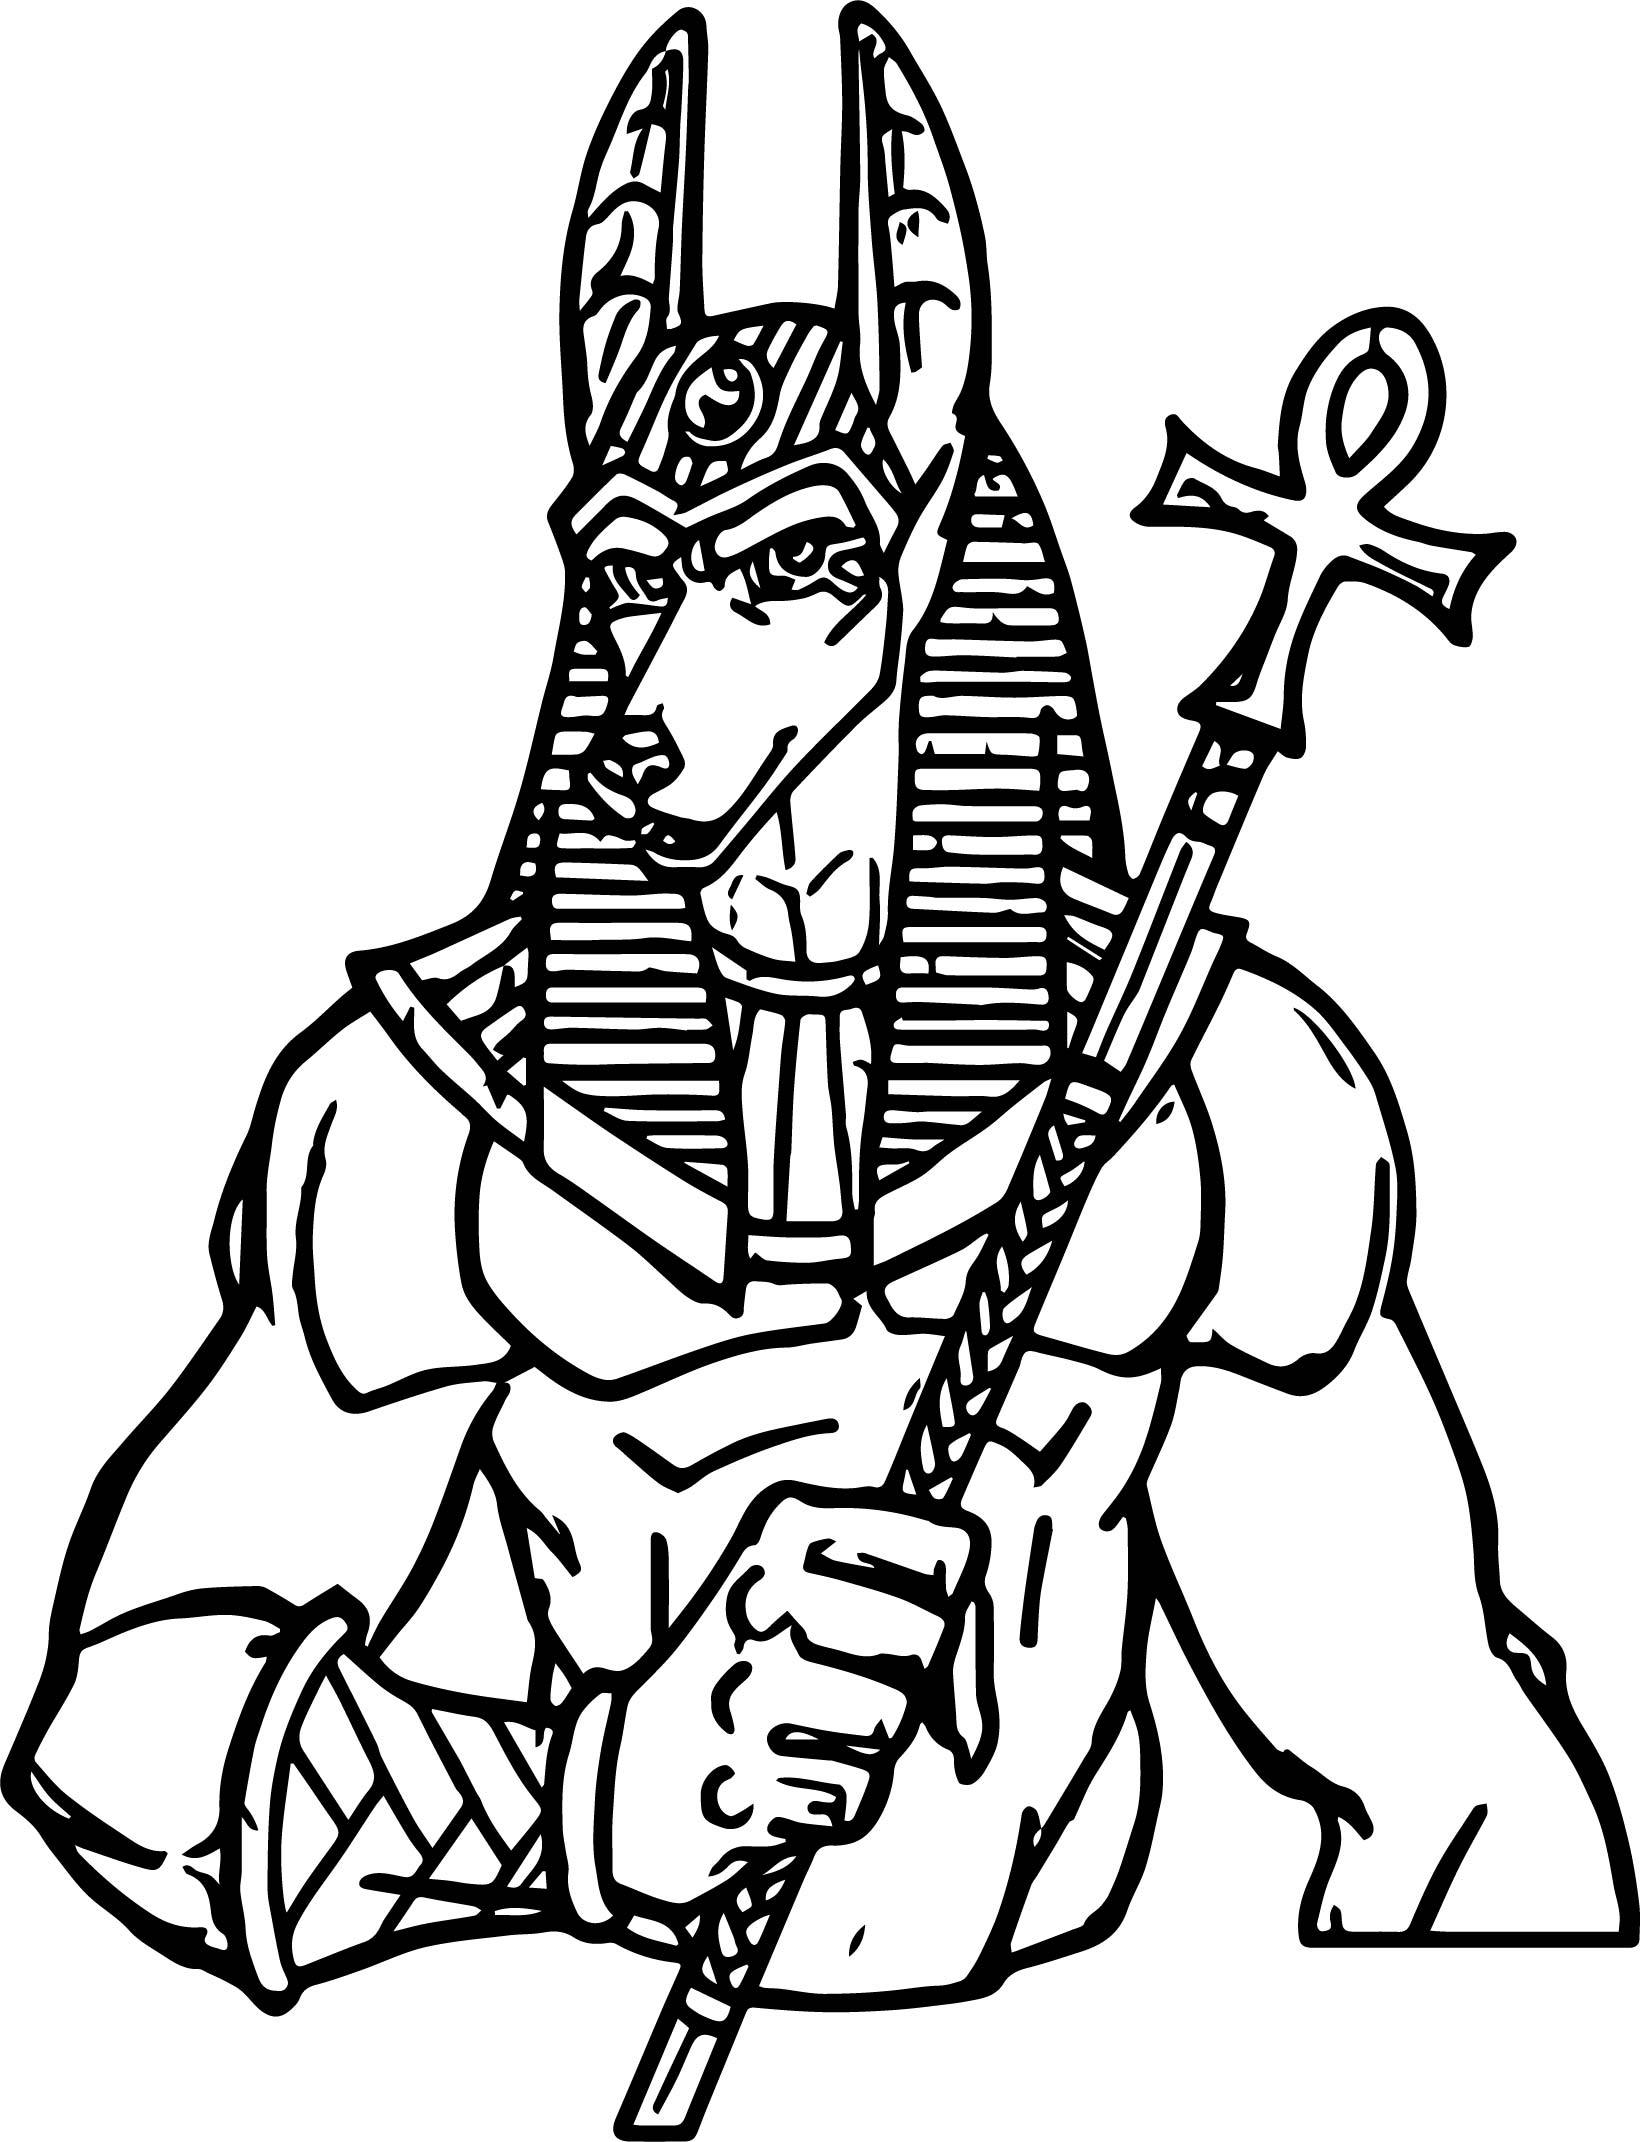 egyptian cat coloring page pin by madison monroe johnson on adult coloring pages page coloring egyptian cat